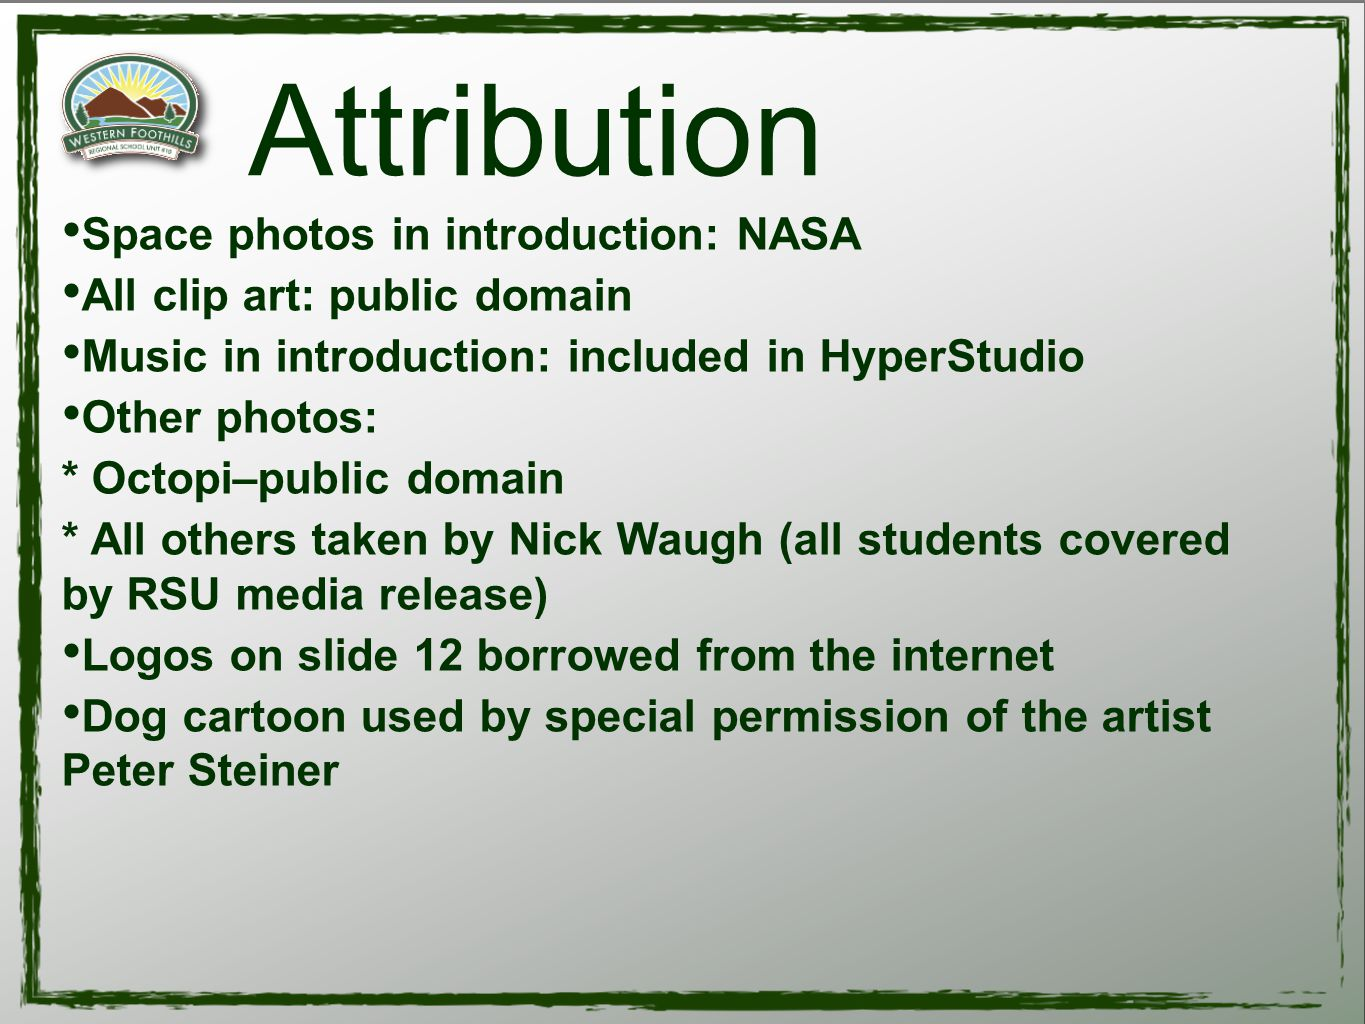 Attribution Space photos in introduction: NASA All clip art: public domain Music in introduction: included in HyperStudio Other photos: * Octopi–public domain * All others taken by Nick Waugh (all students covered by RSU media release) Logos on slide 12 borrowed from the internet Dog cartoon used by special permission of the artist Peter Steiner